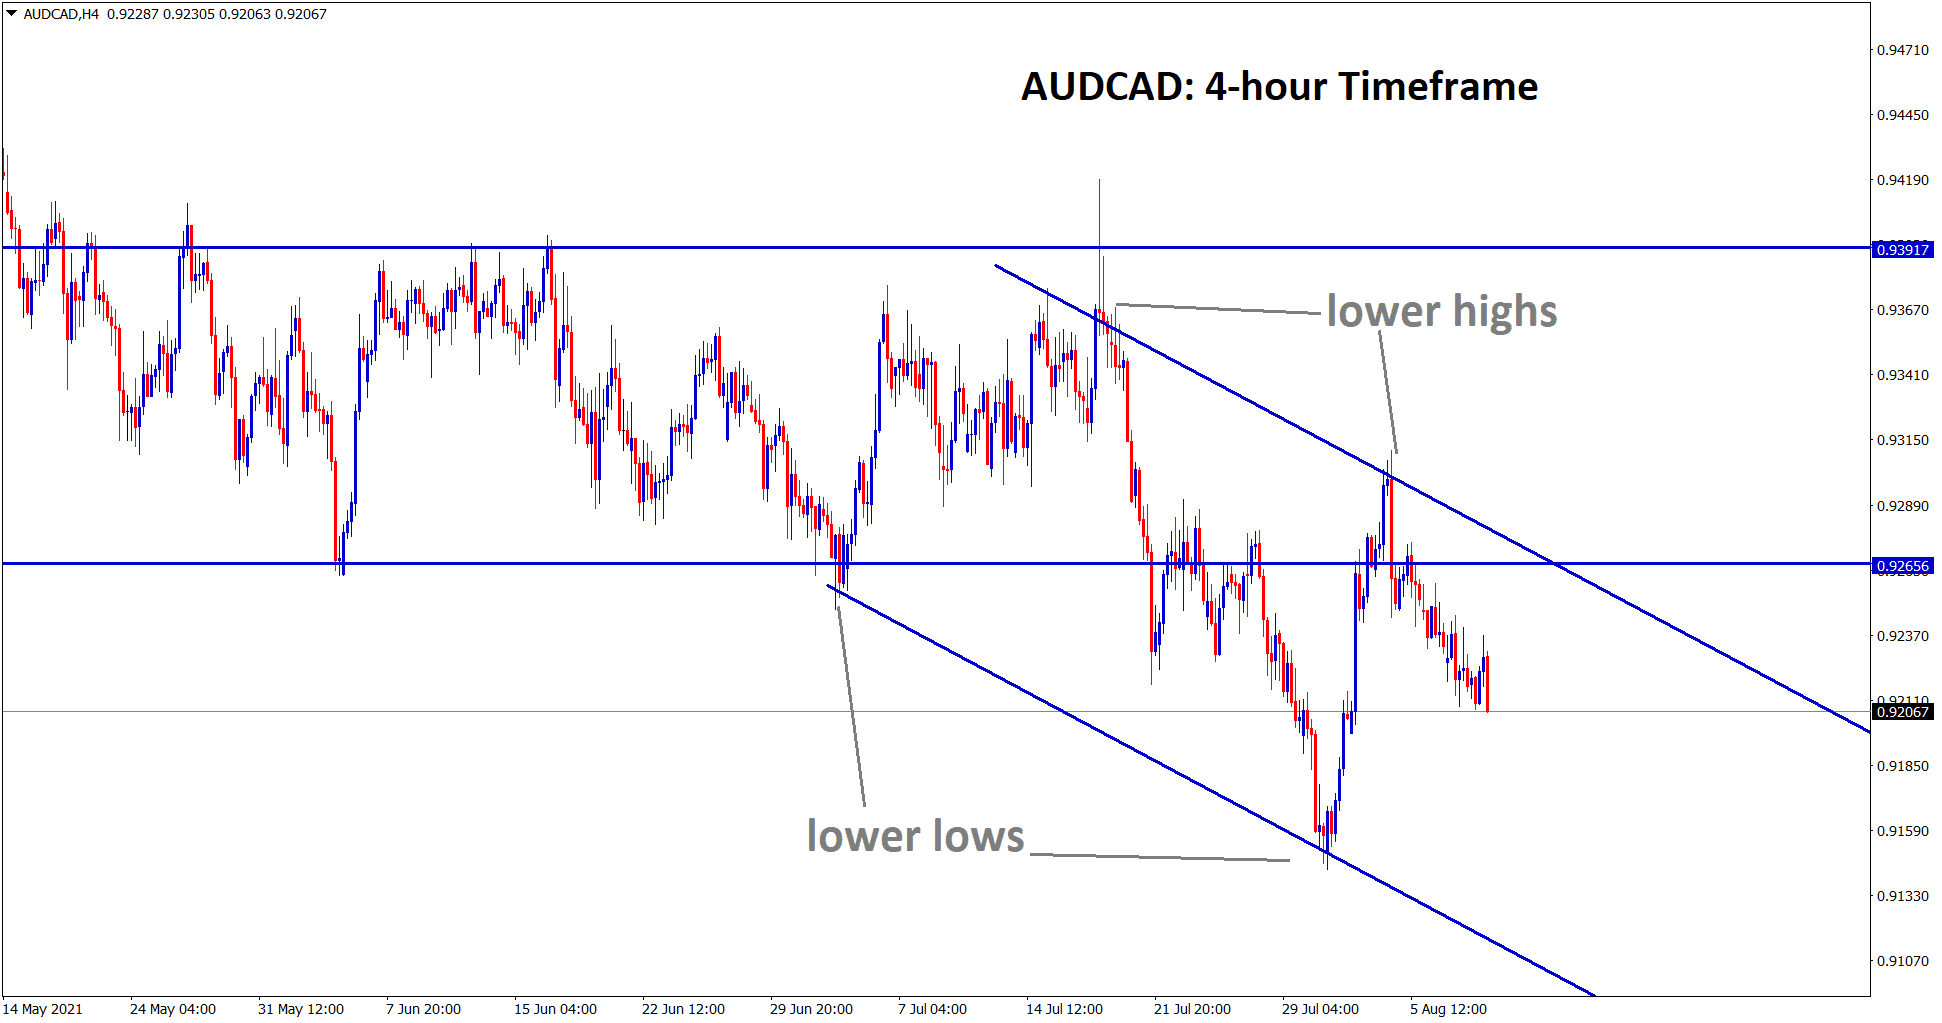 AUDCAD is falling from the lower high zone of the descending channel